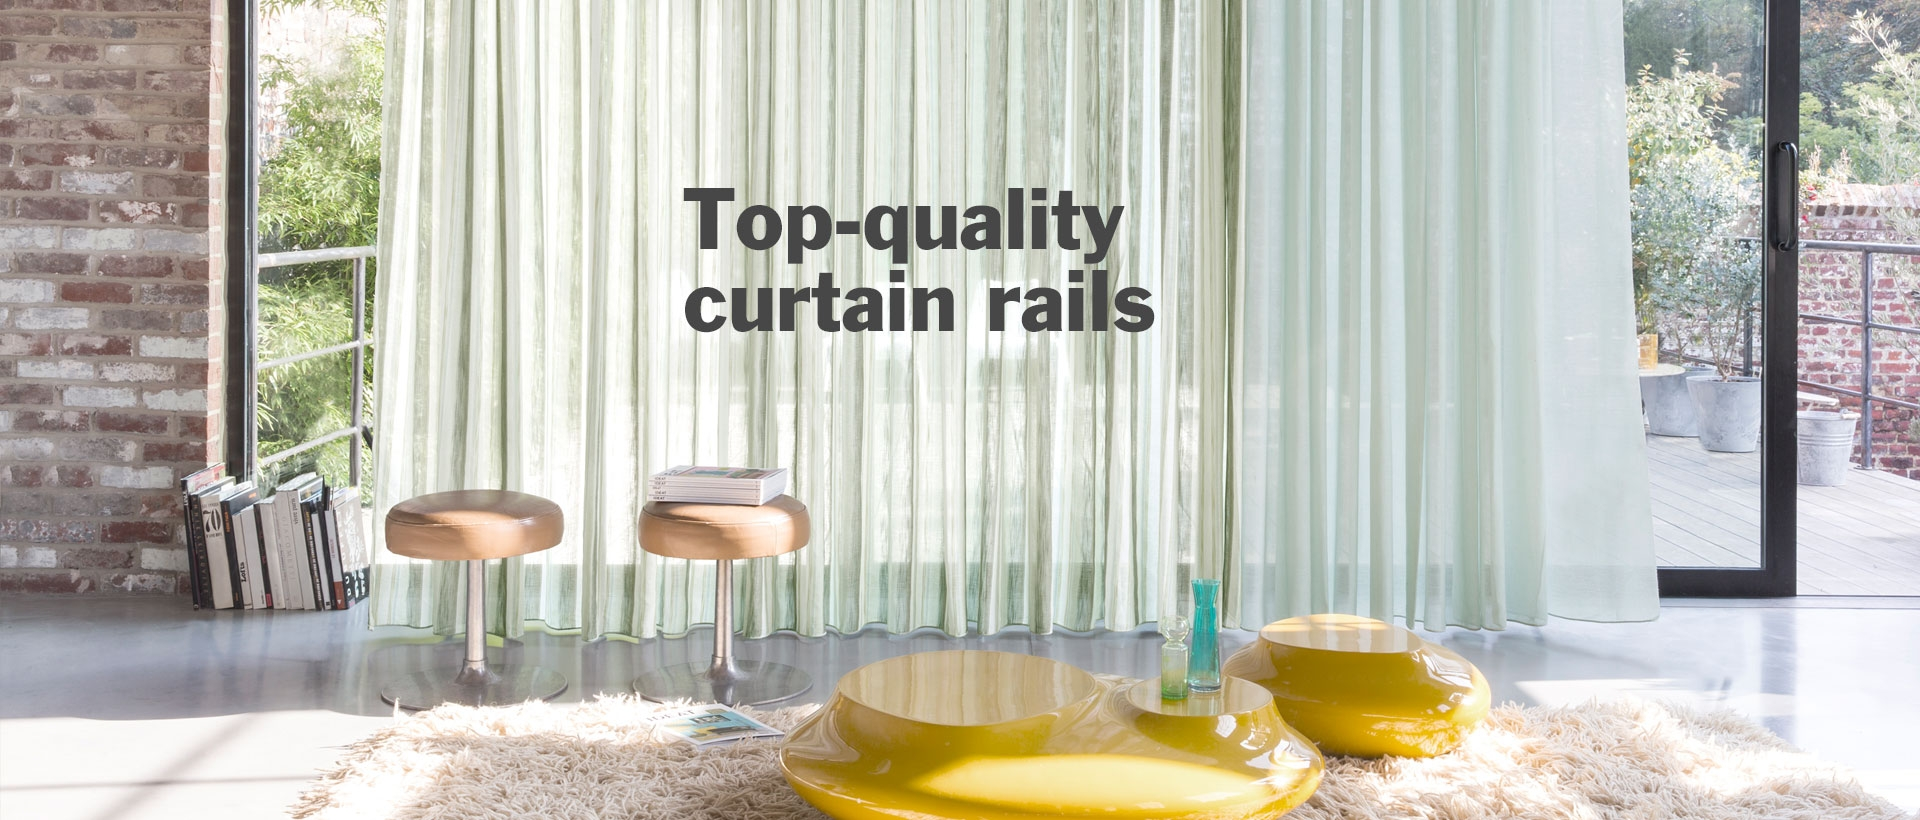 Top-quality curtain rails